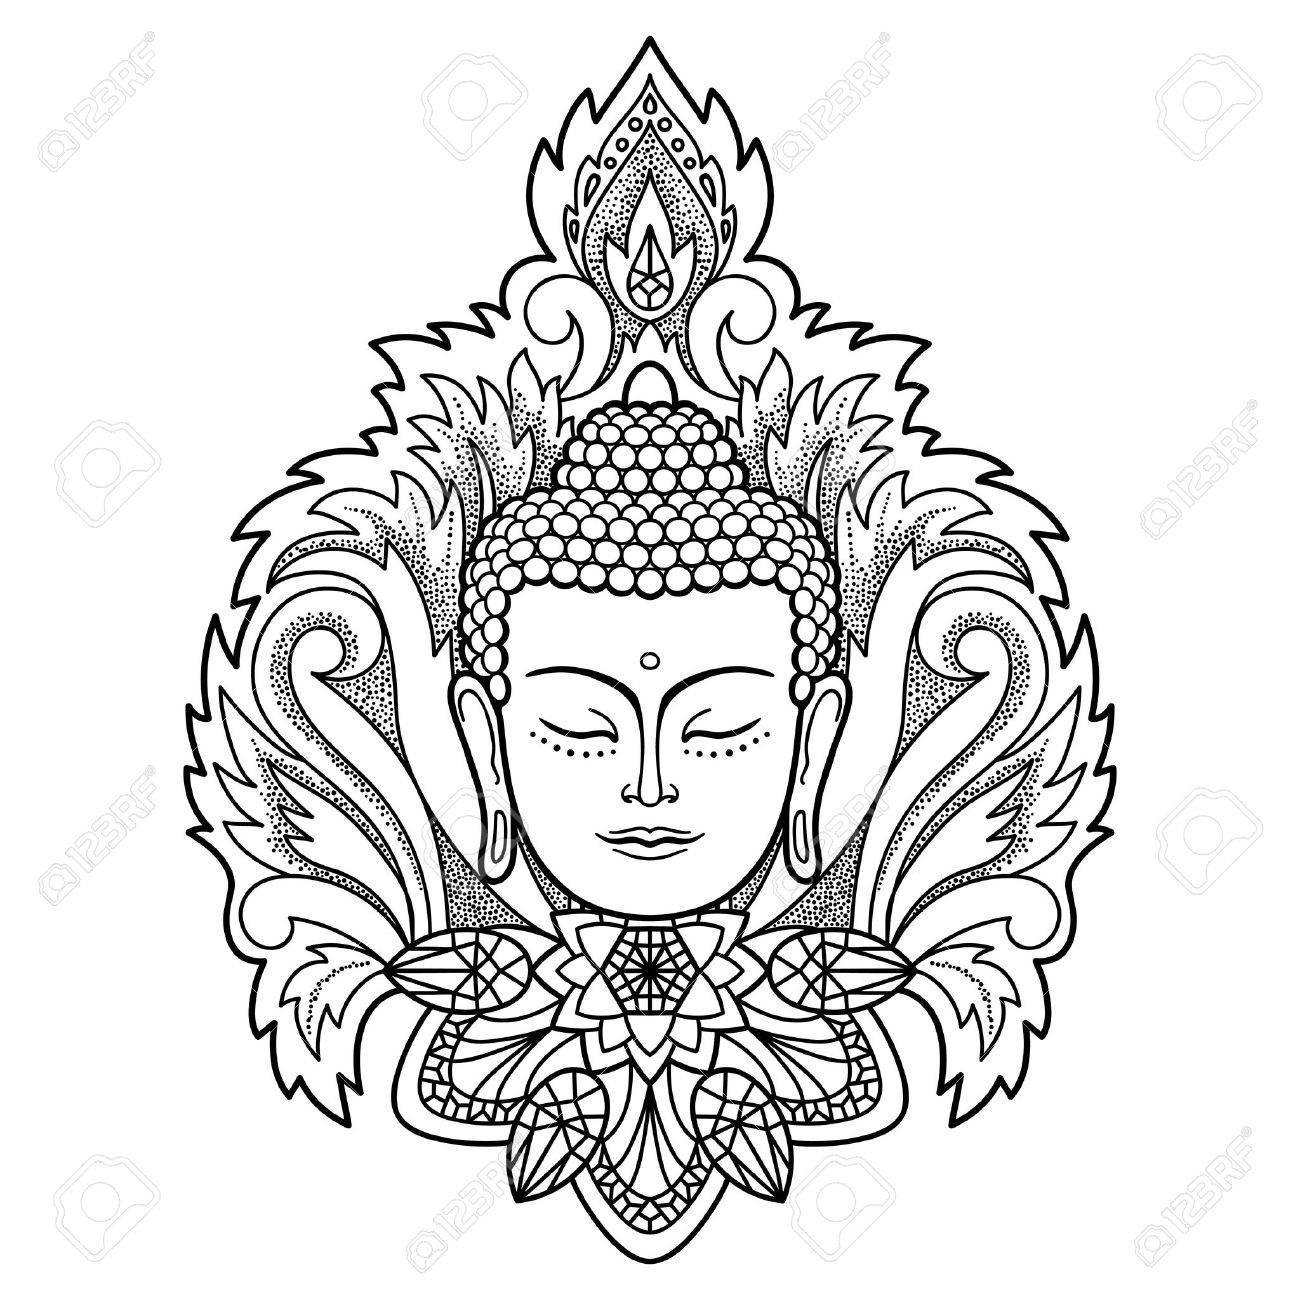 1300x1300 Buddha Head With Floral Decoration. Sign For Tattoo, Textile